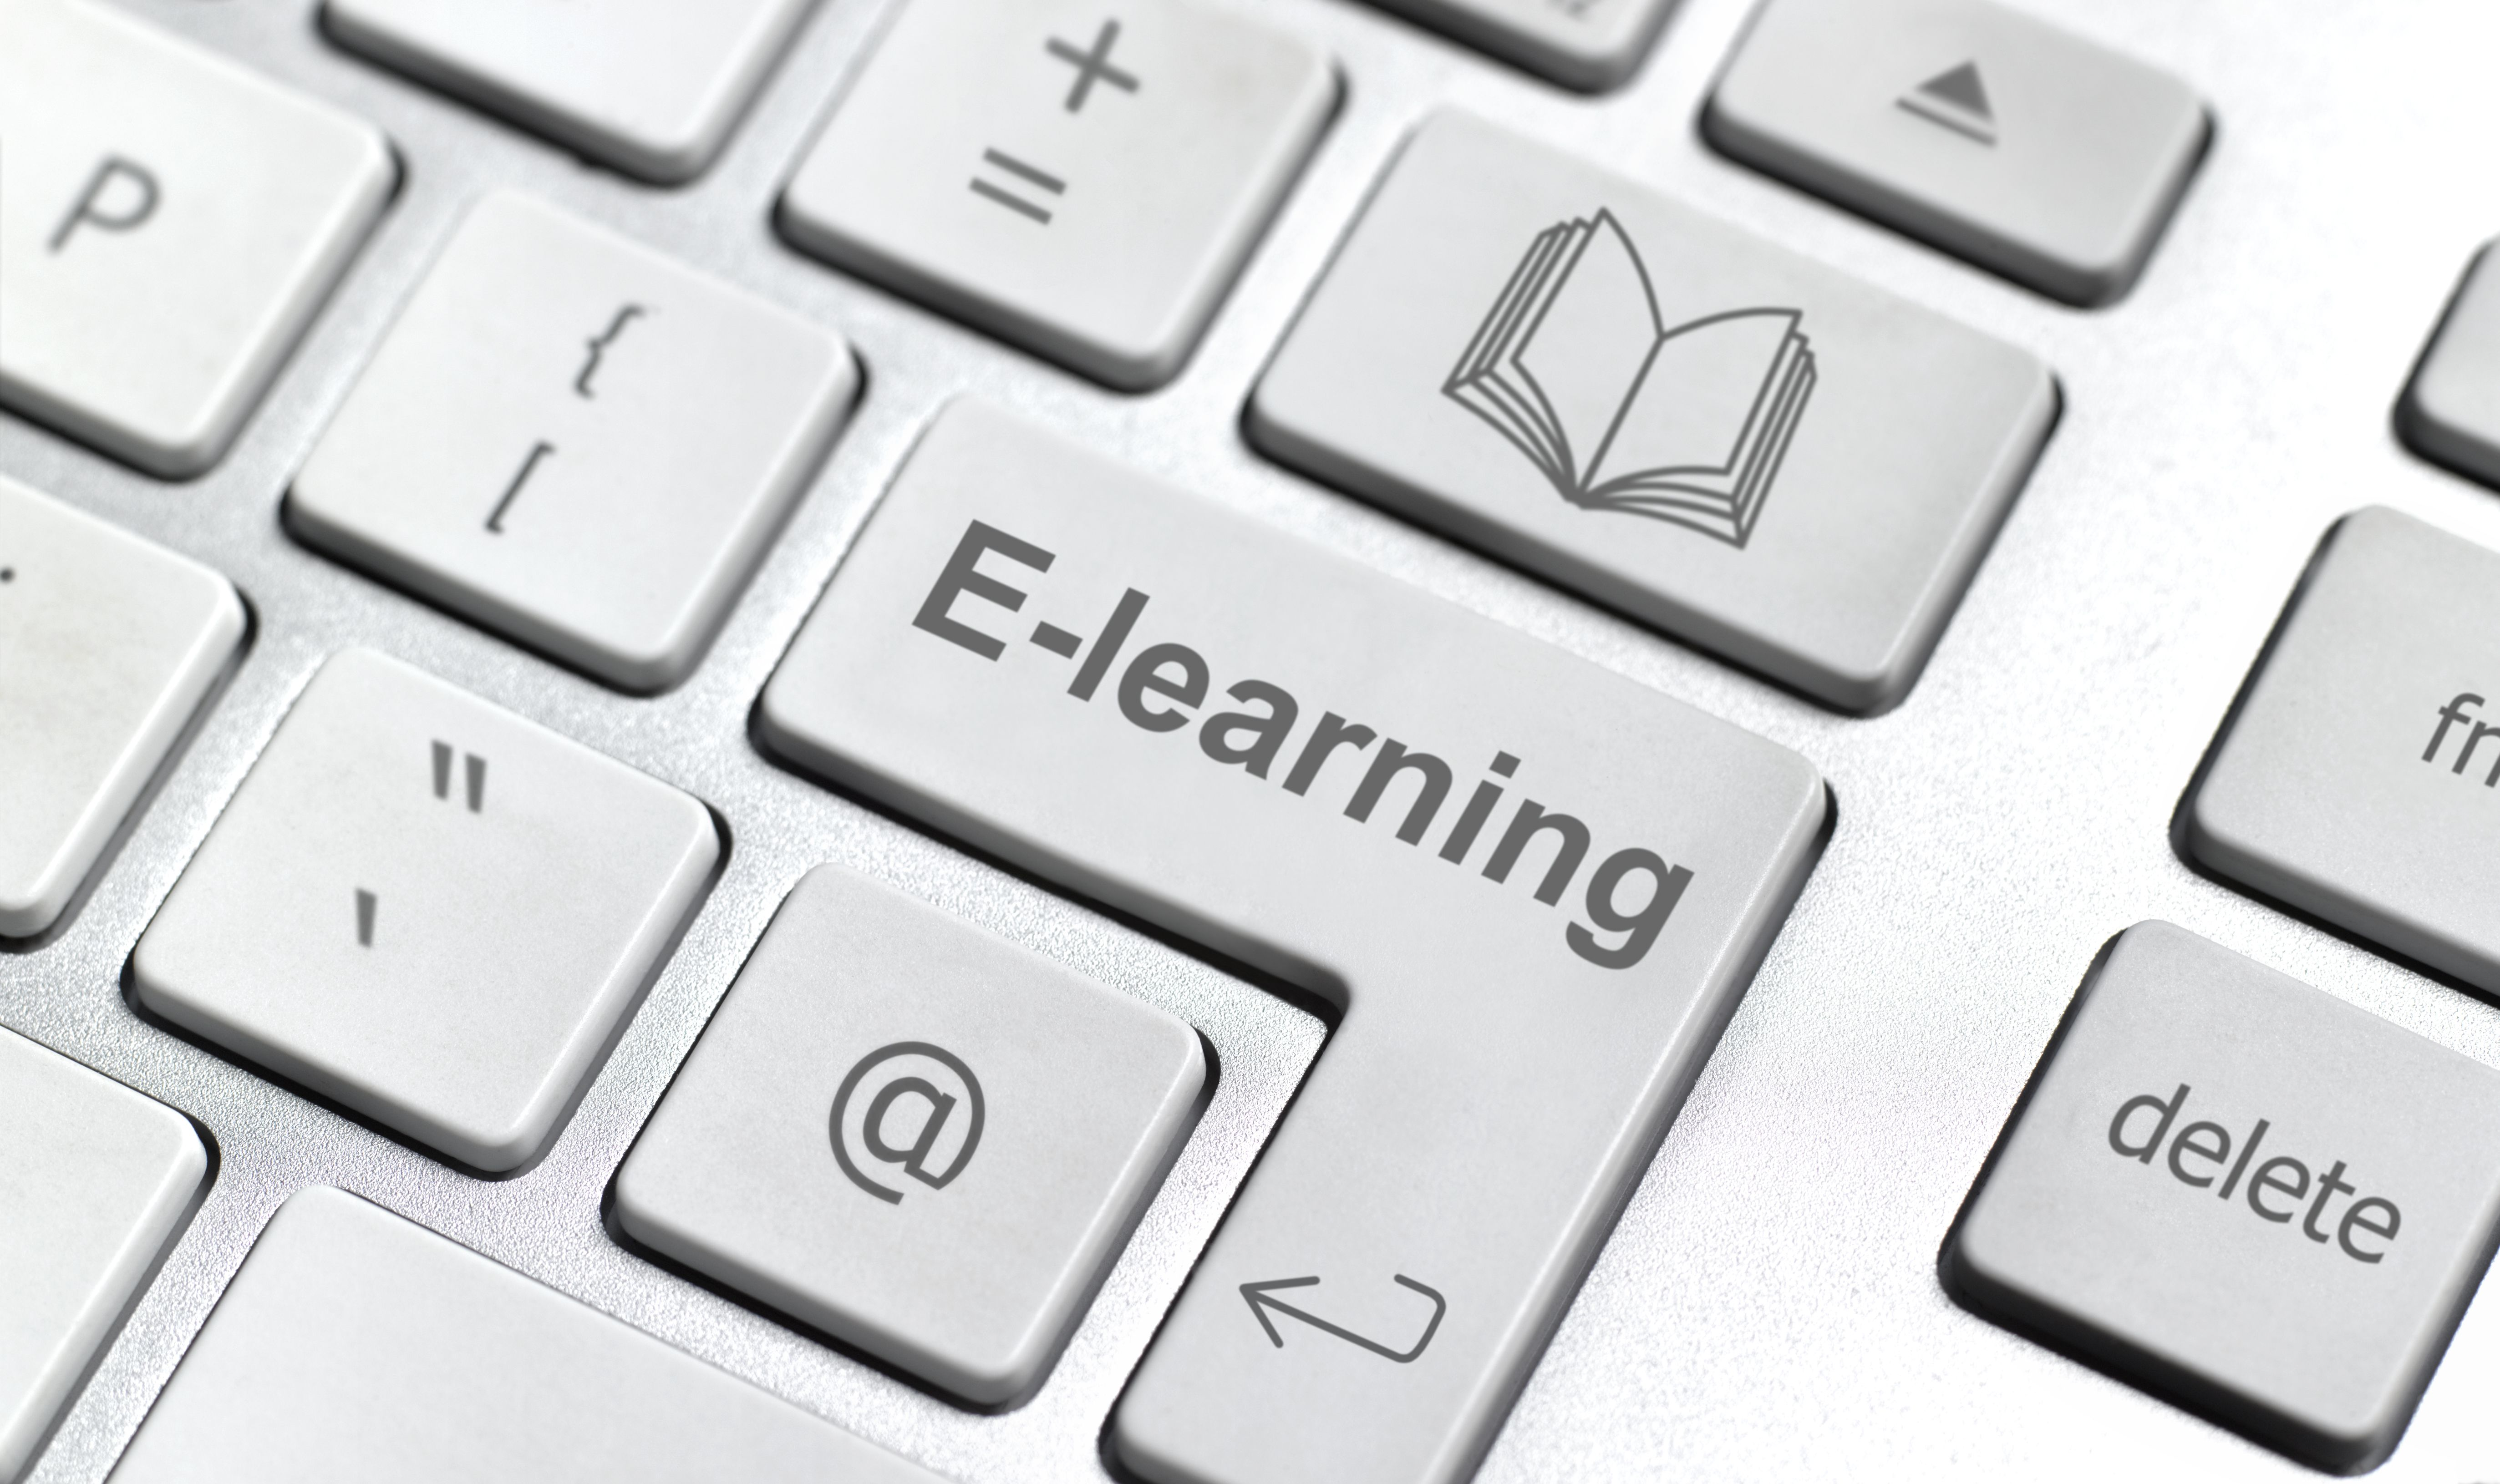 10 Steps to Creating and Selling an Online Course